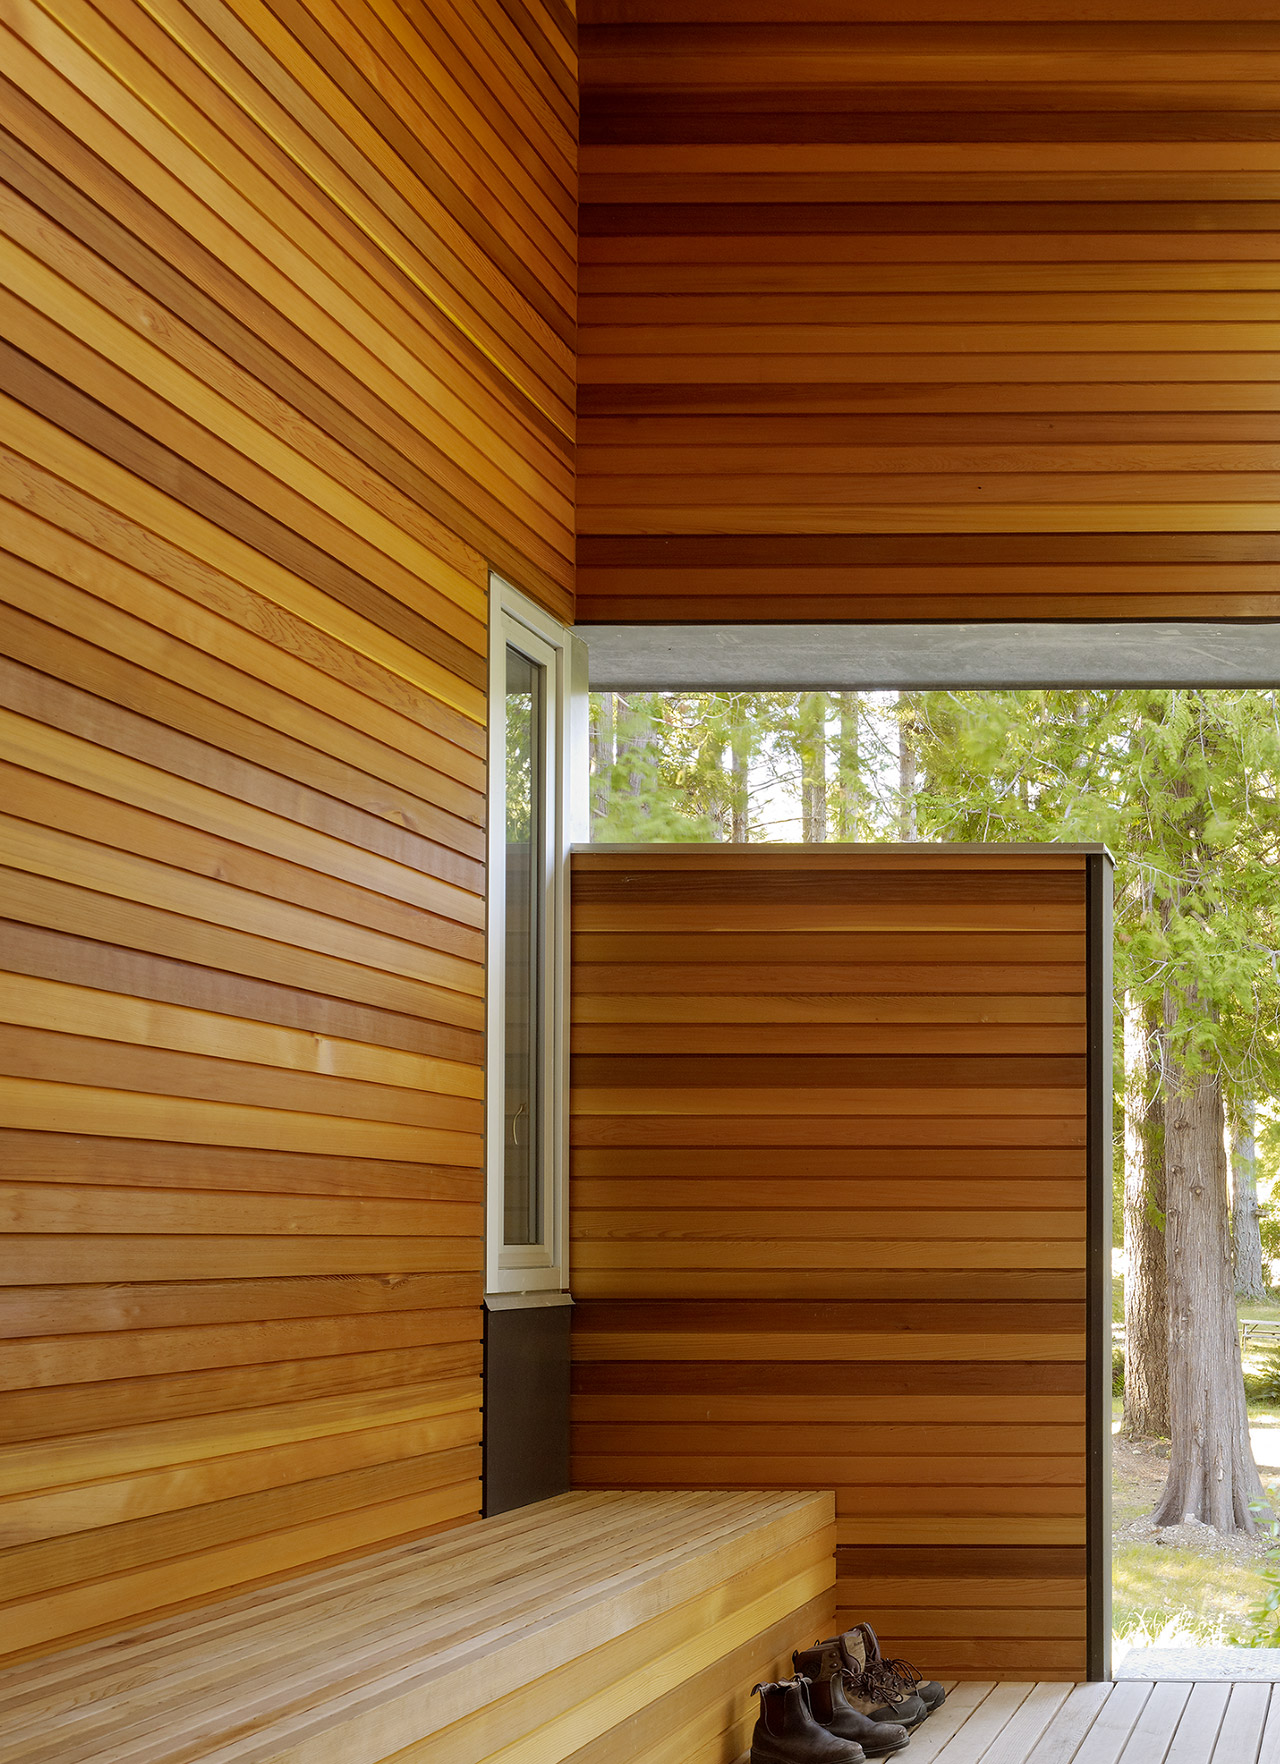 Wood panelled outdoor deck space